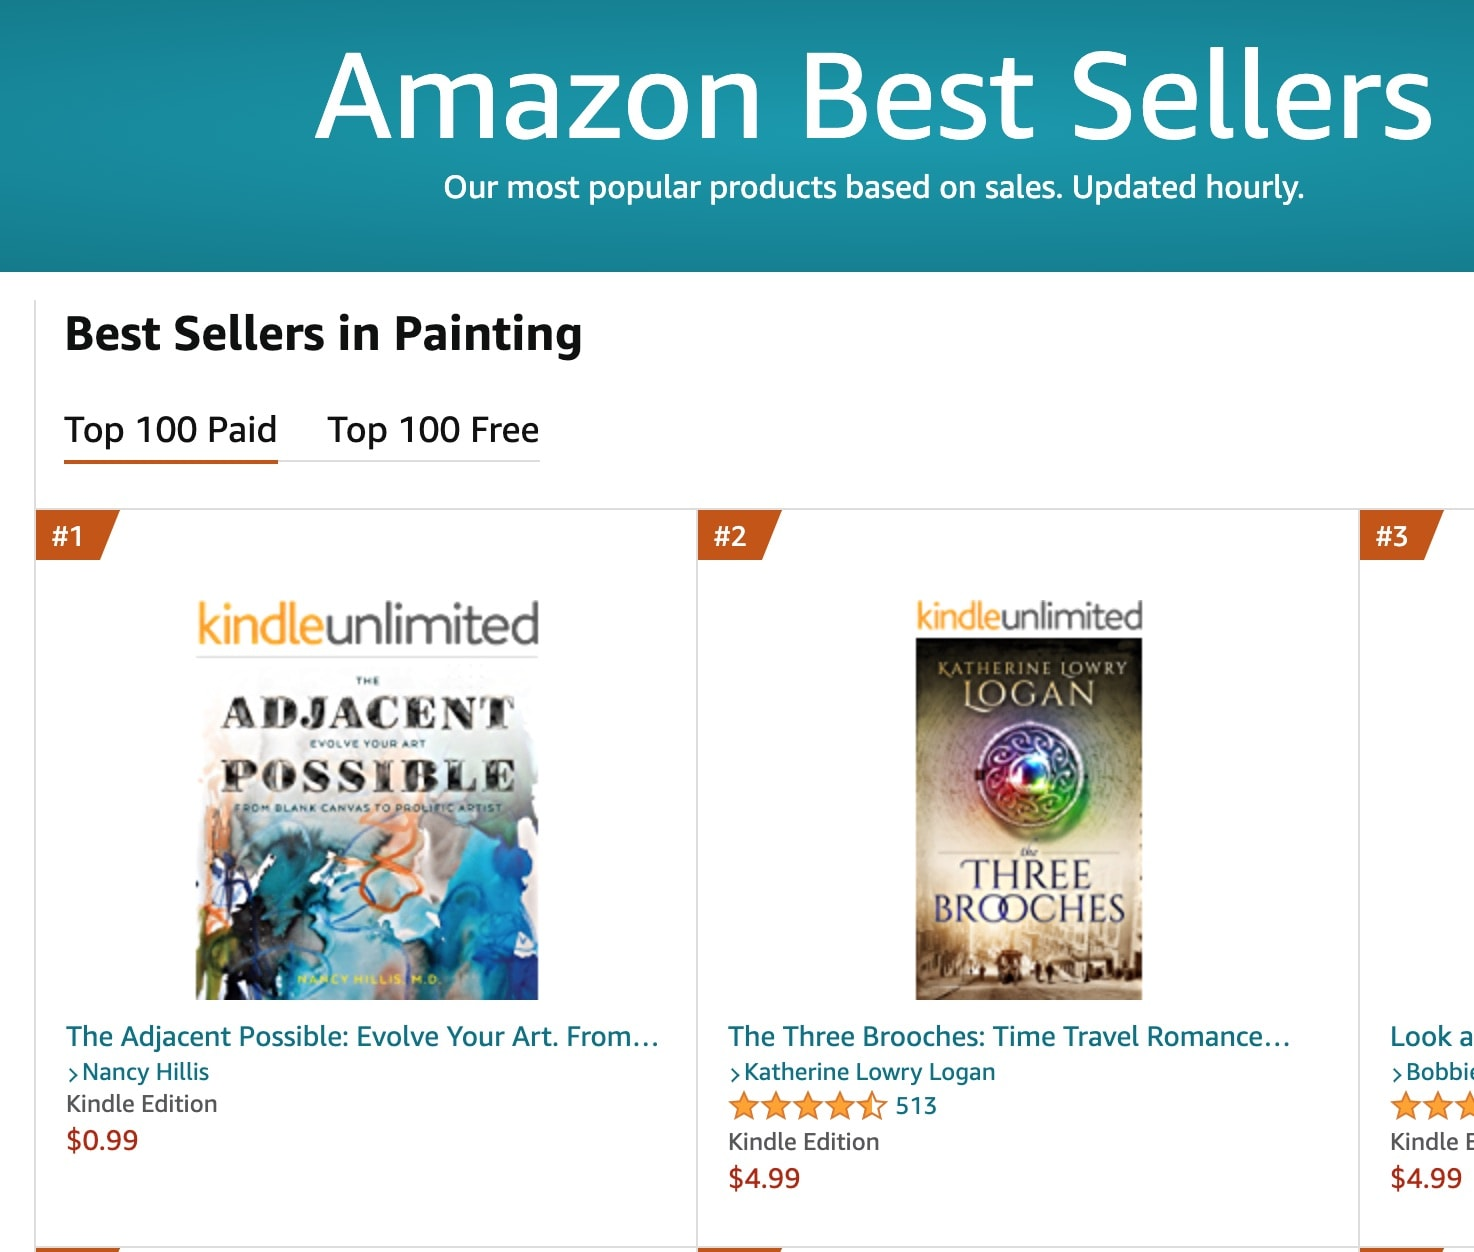 The Adjacent Possible- #1 Best Seller in Painting